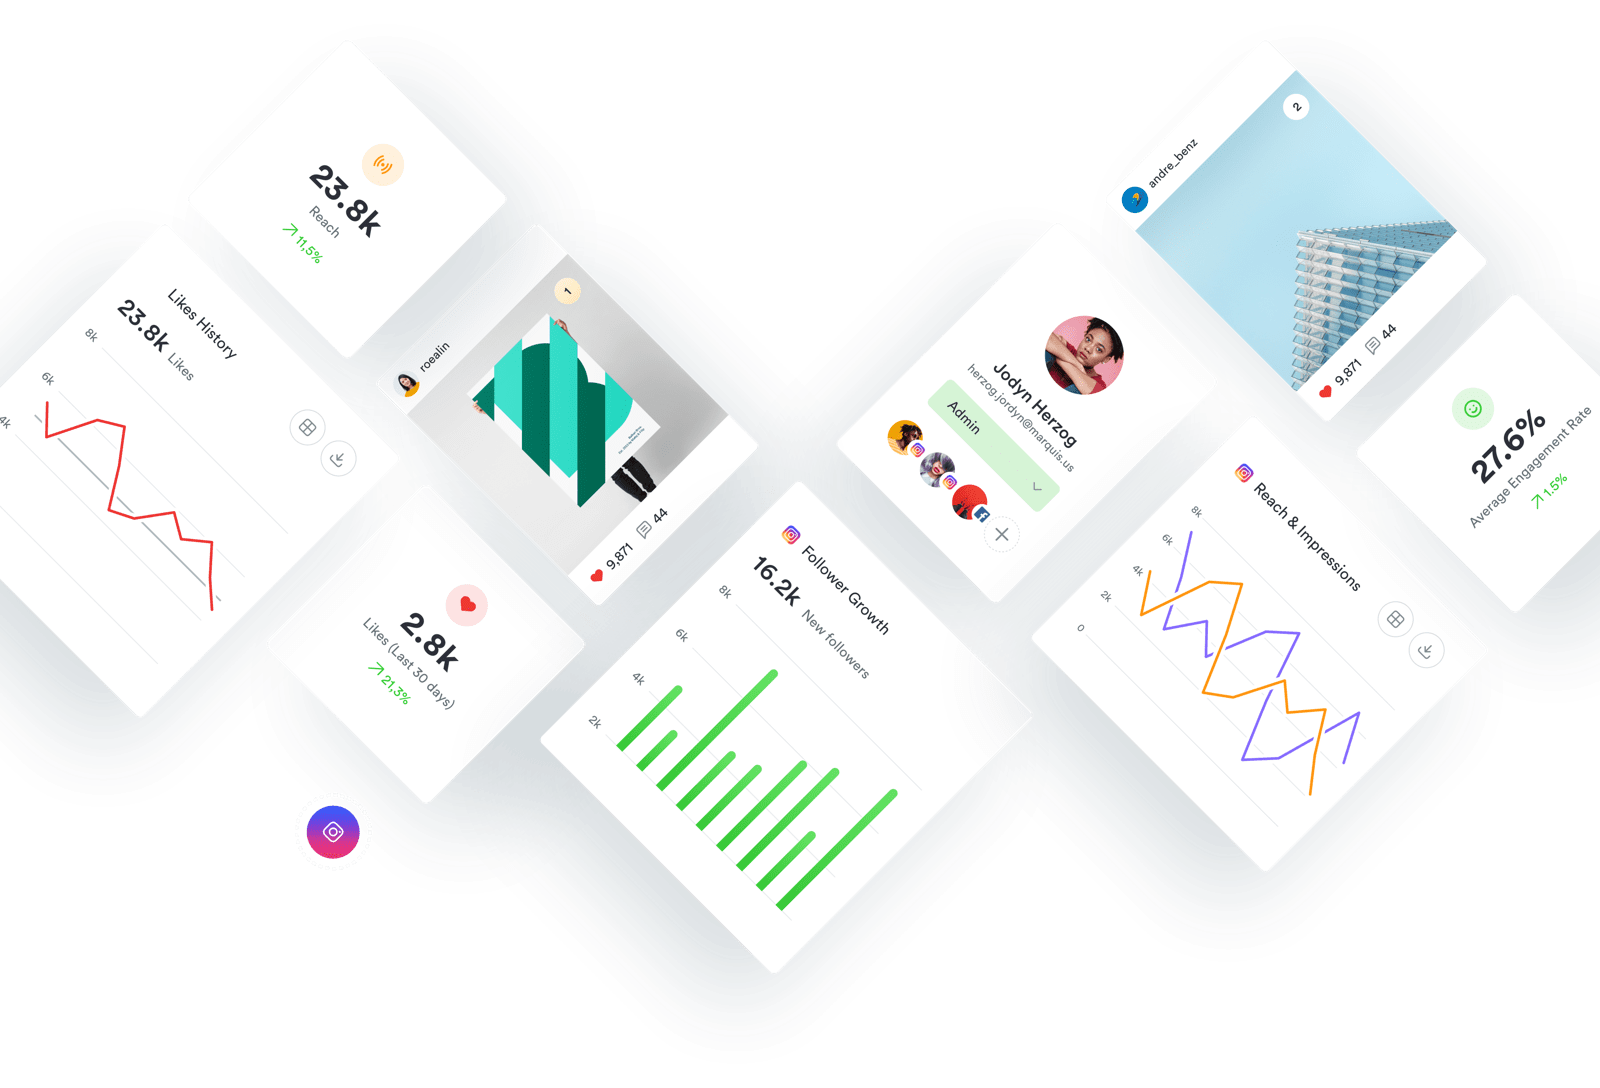 Iconosquare - Instagram & Facebook Analytics and Management